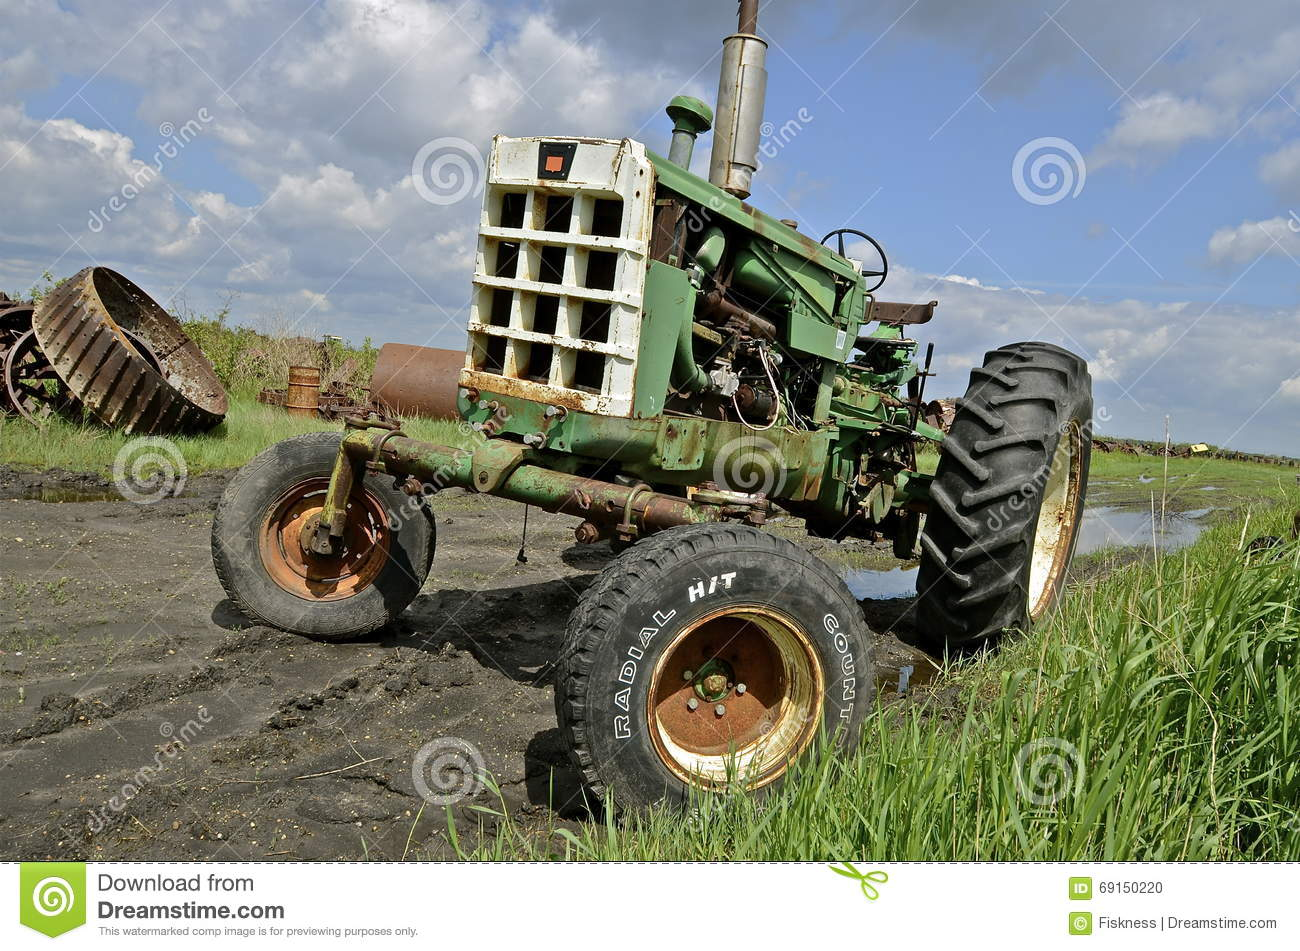 Tractor Equipment Salvage Yards : Old oliver tractor in a salvage yard editorial image